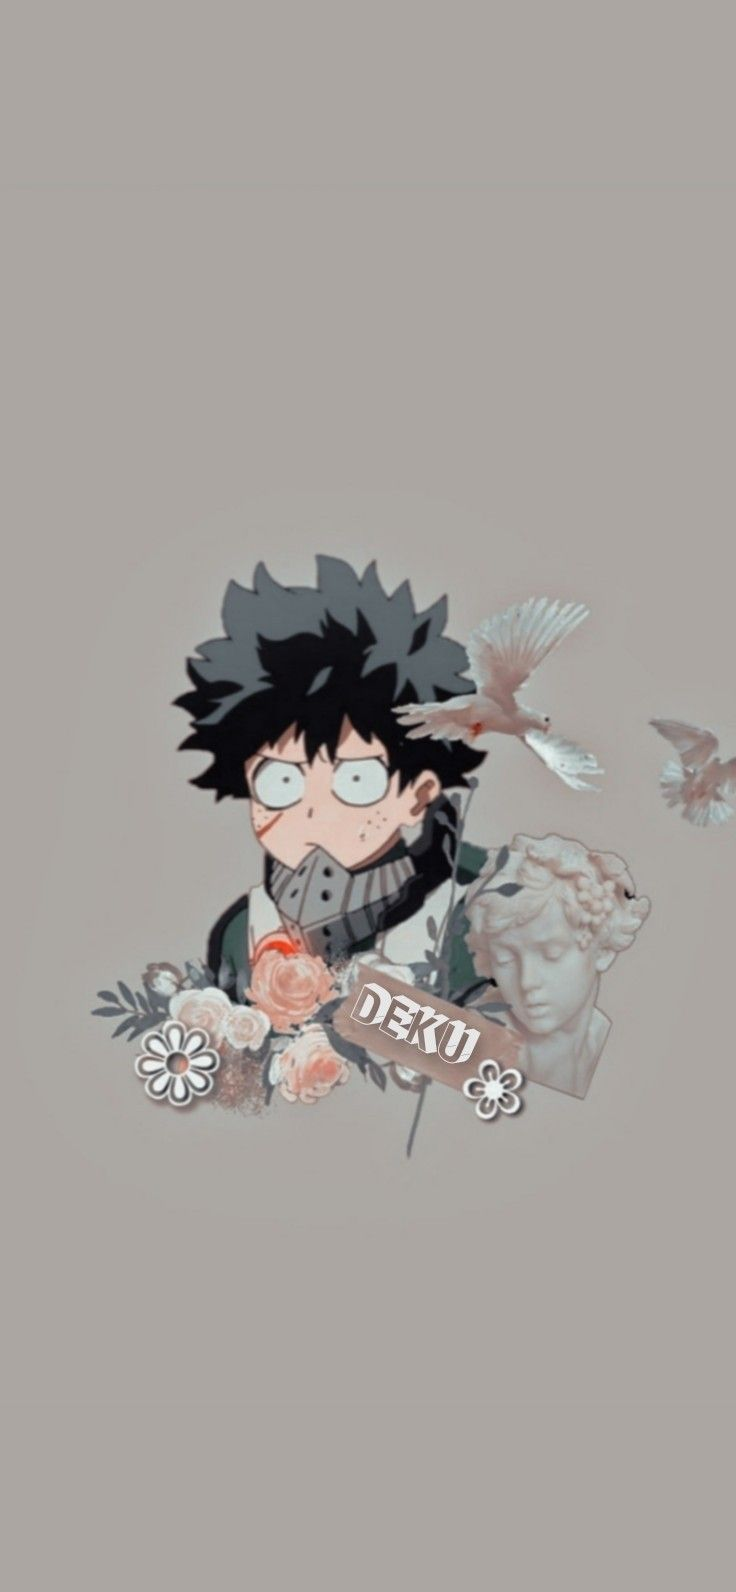 Funny Anime Wallpaper Iphone : funny, anime, wallpaper, iphone, 𓇢༘✾, 𓏲𝘸𝘢𝘭𝘭𝘱𝘢𝘱𝘦𝘳, 𓆡𓈒, Anime, Wallpaper,, Aesthetic